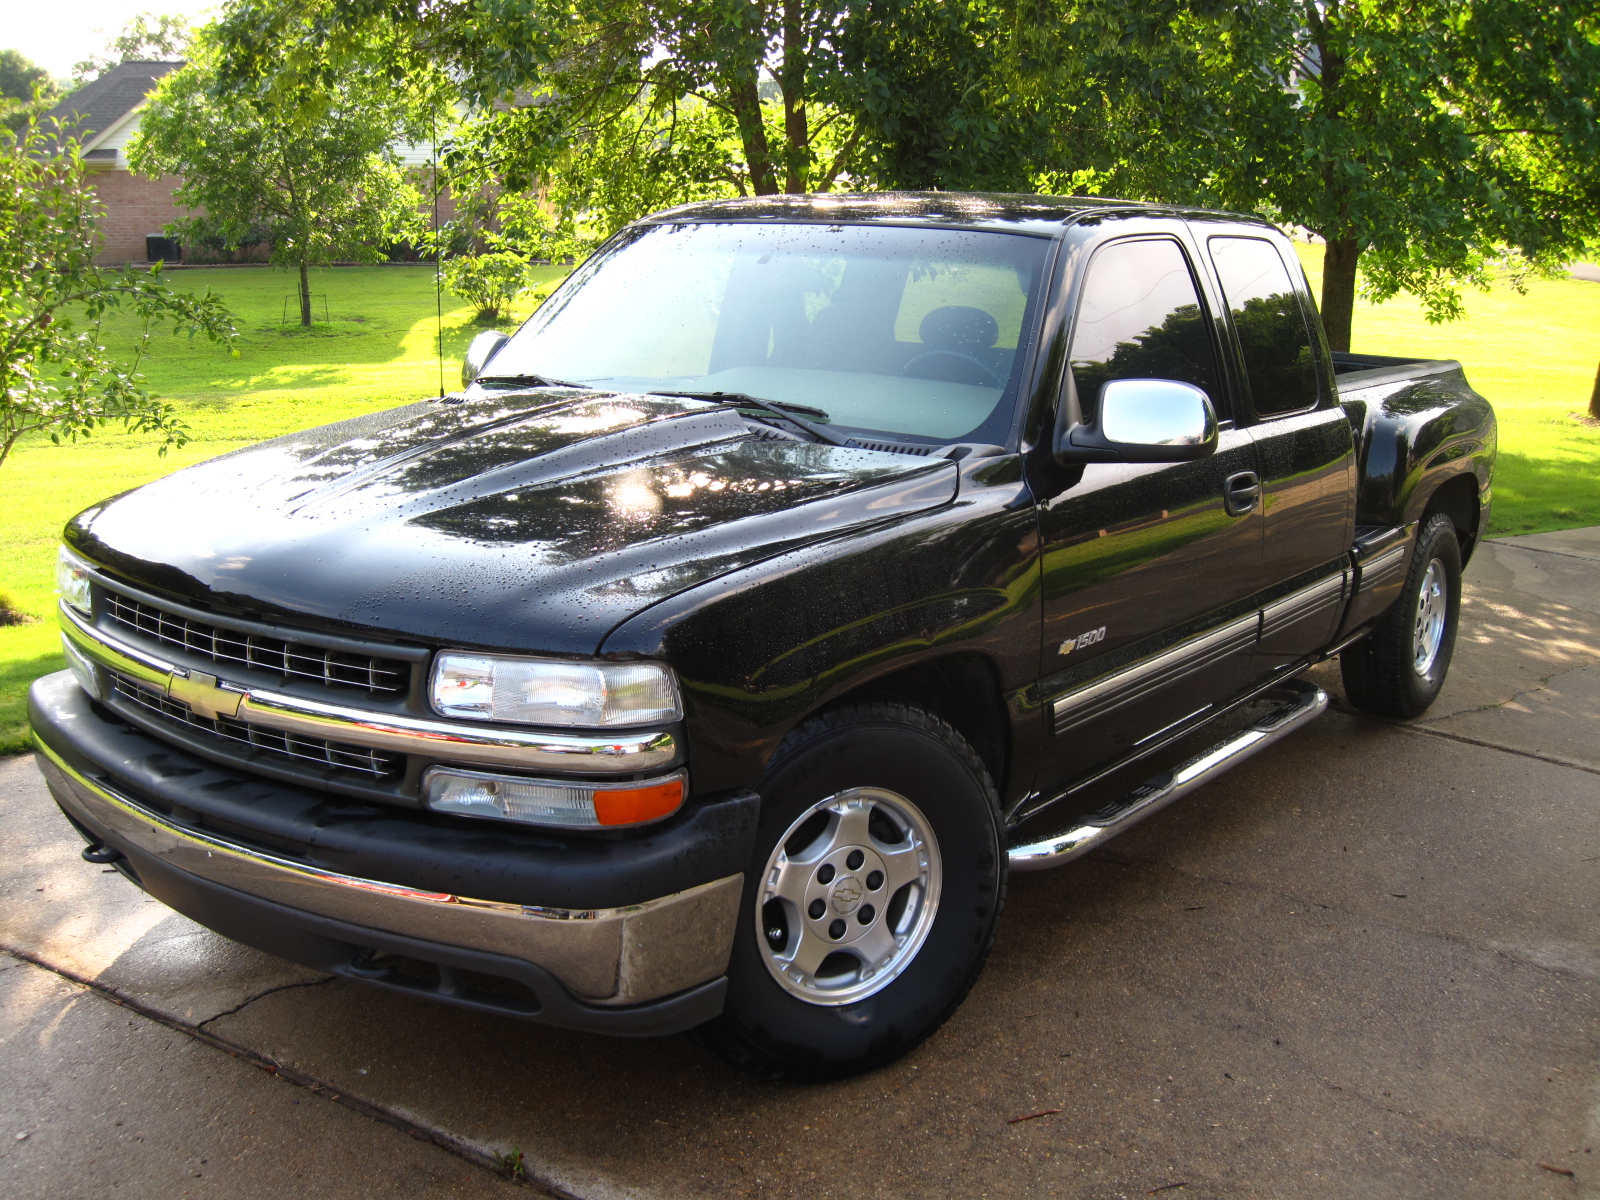 2002 chevrolet silverado 1500 exterior pictures cargurus. Black Bedroom Furniture Sets. Home Design Ideas